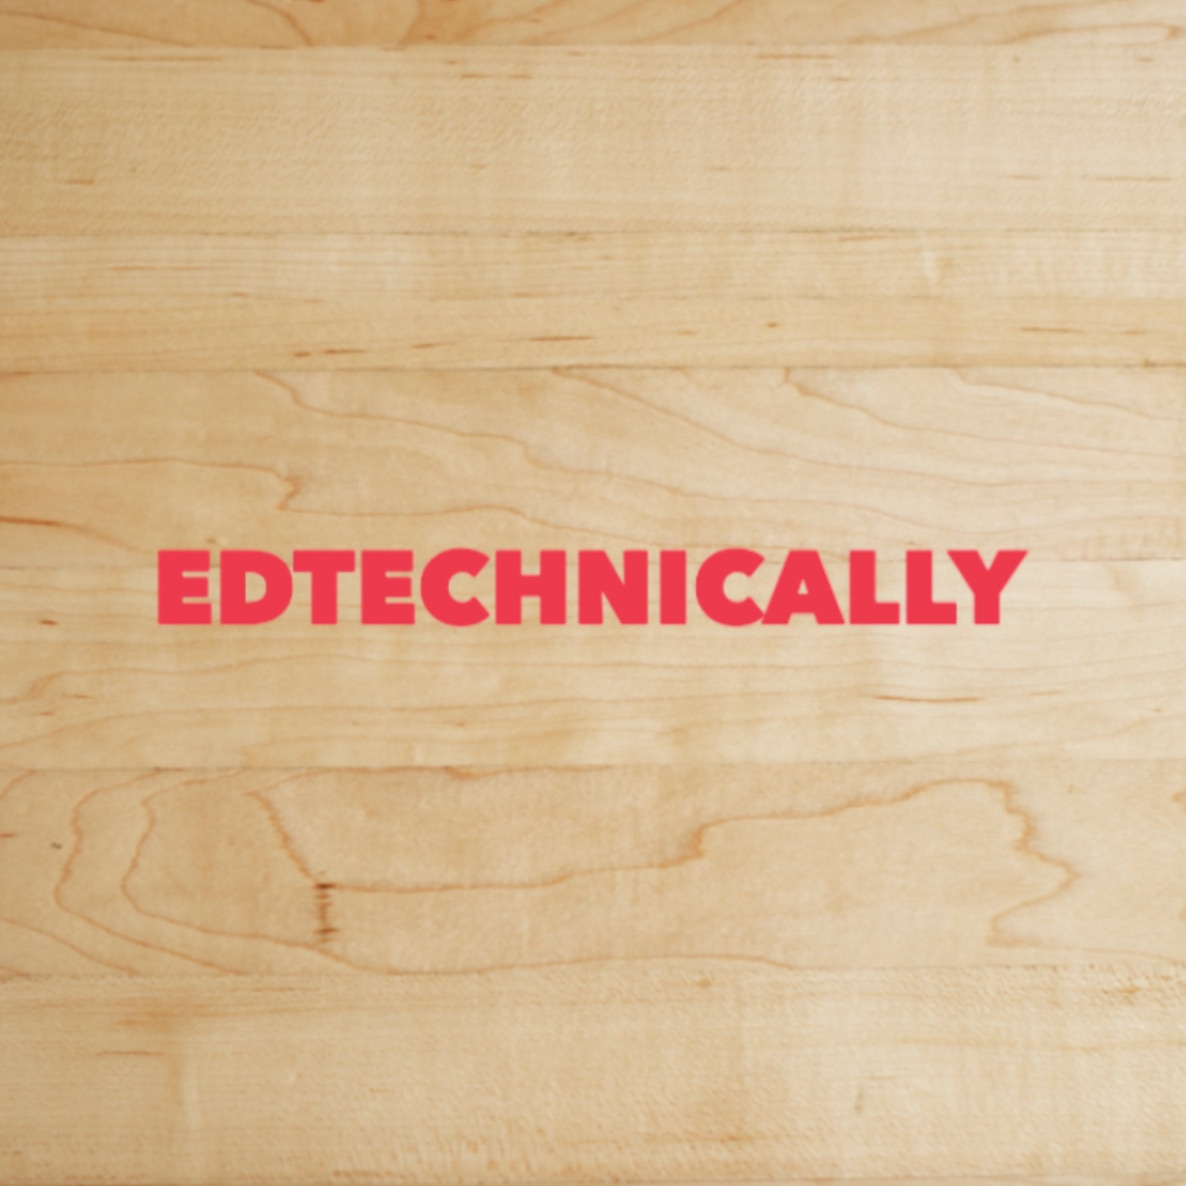 EdTech Startups Are Gaining Users and VC Funding Via an Old Medium: Print